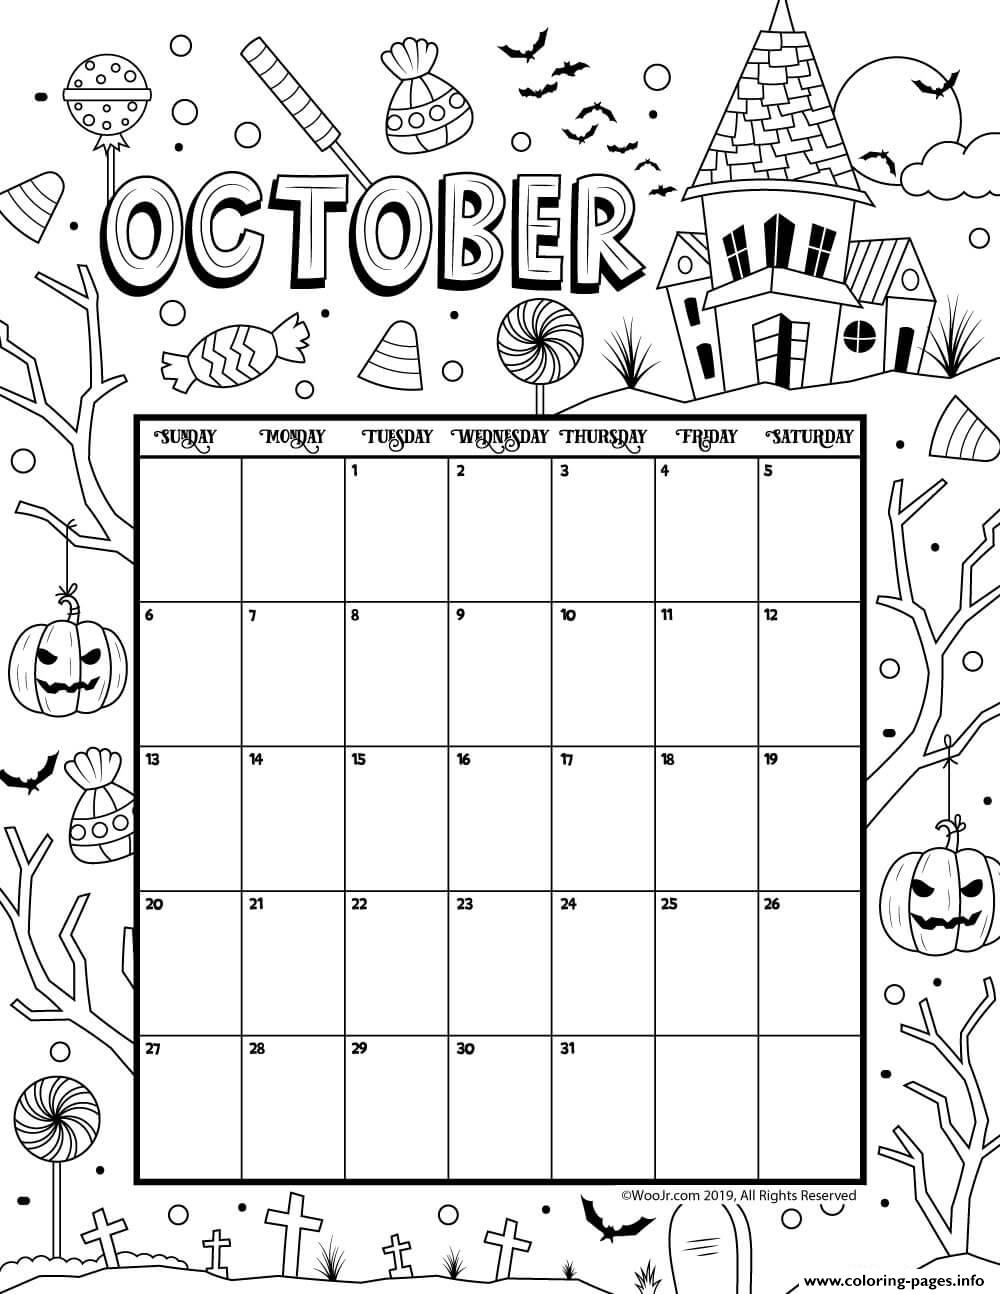 October Coloring Calendar 2019 Coloring Pages Printable